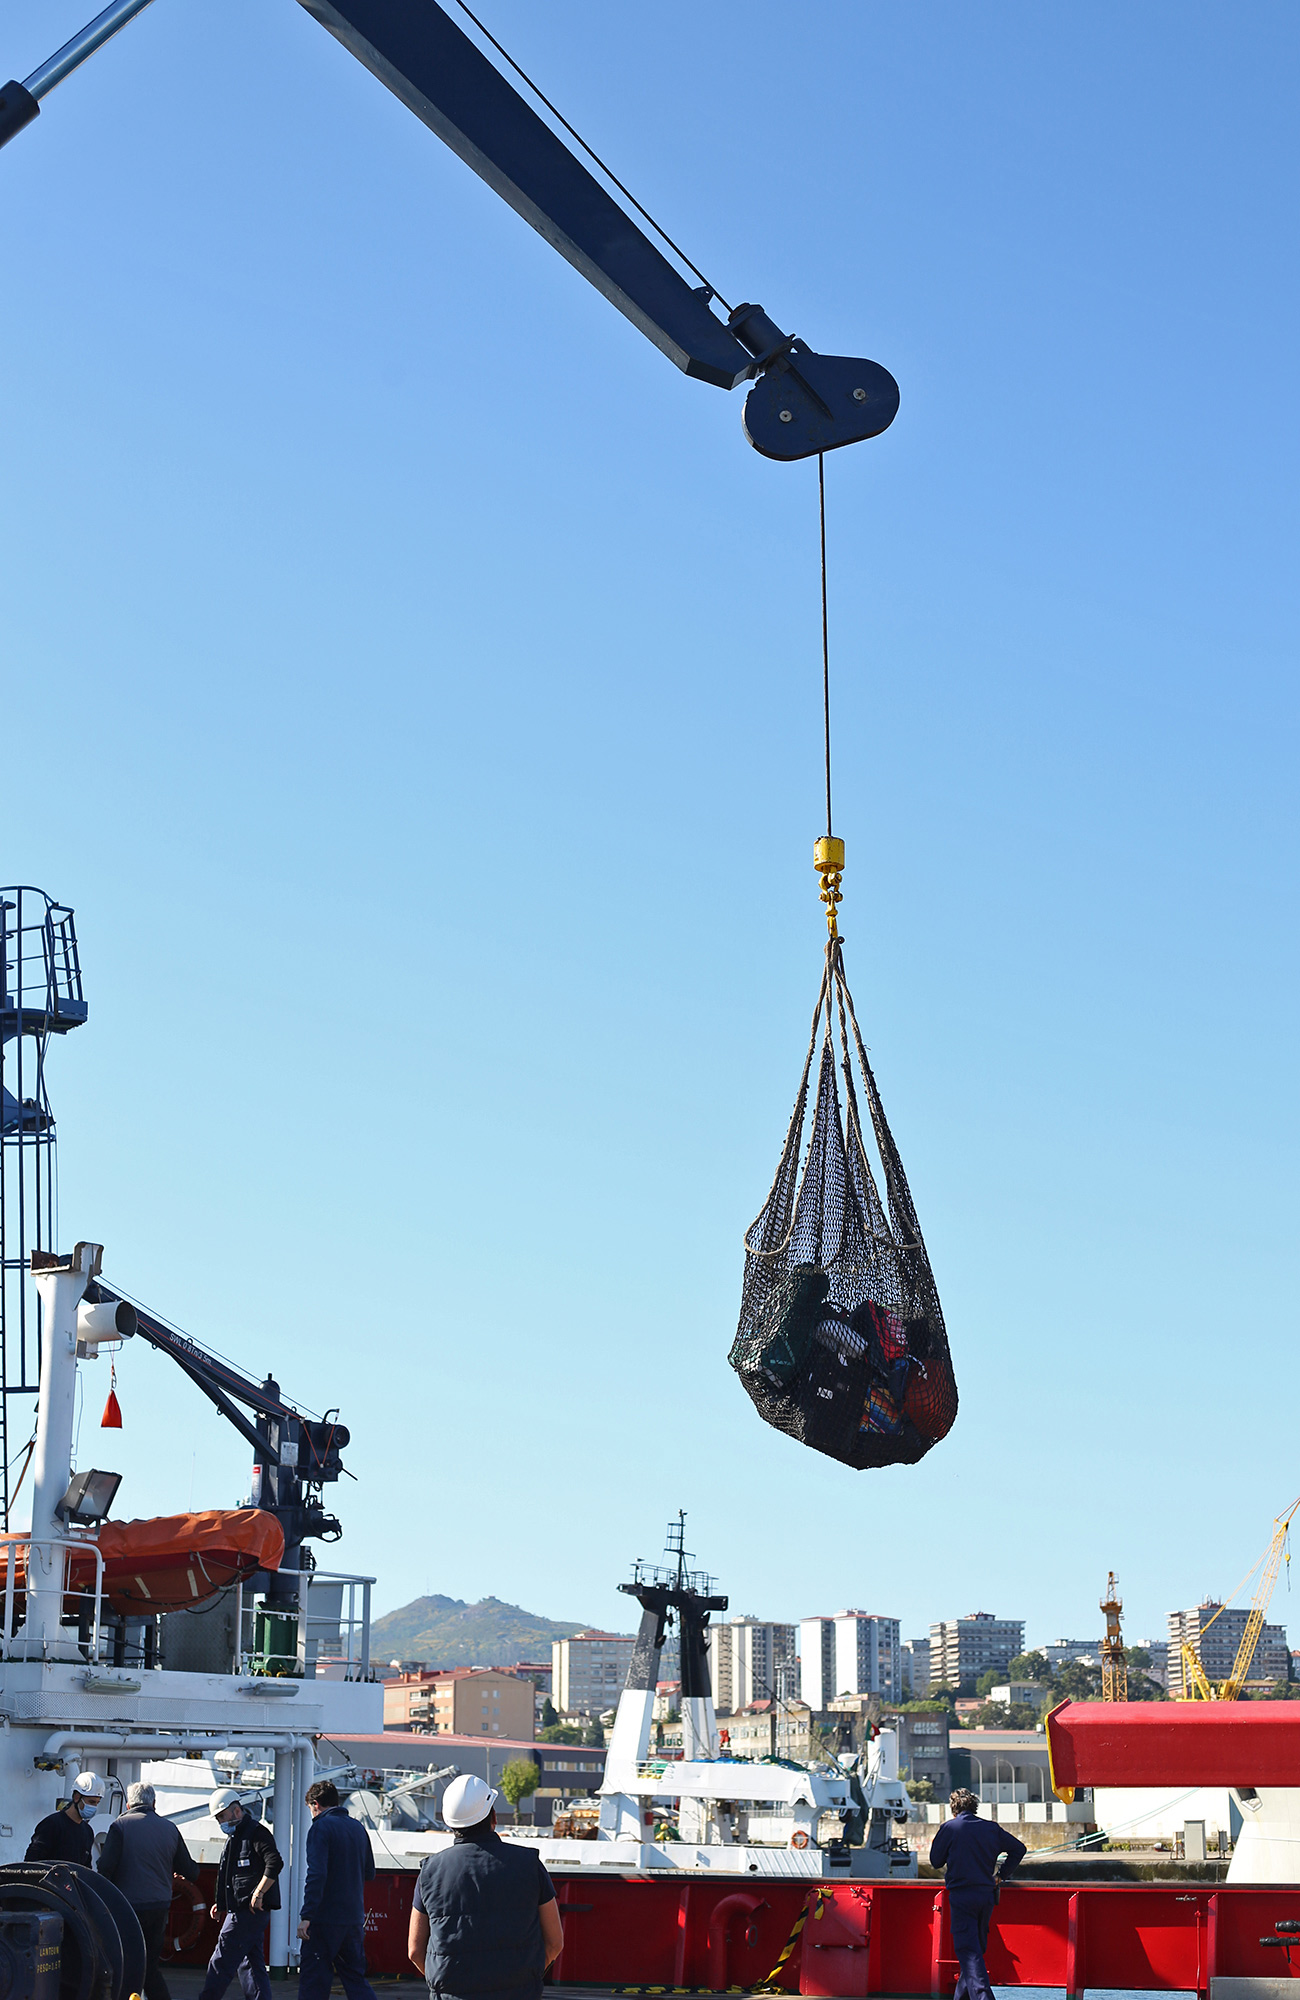 The crew of the R/V Sarmiento de Gamboa uses a crane to load all our luggage onto the ship.